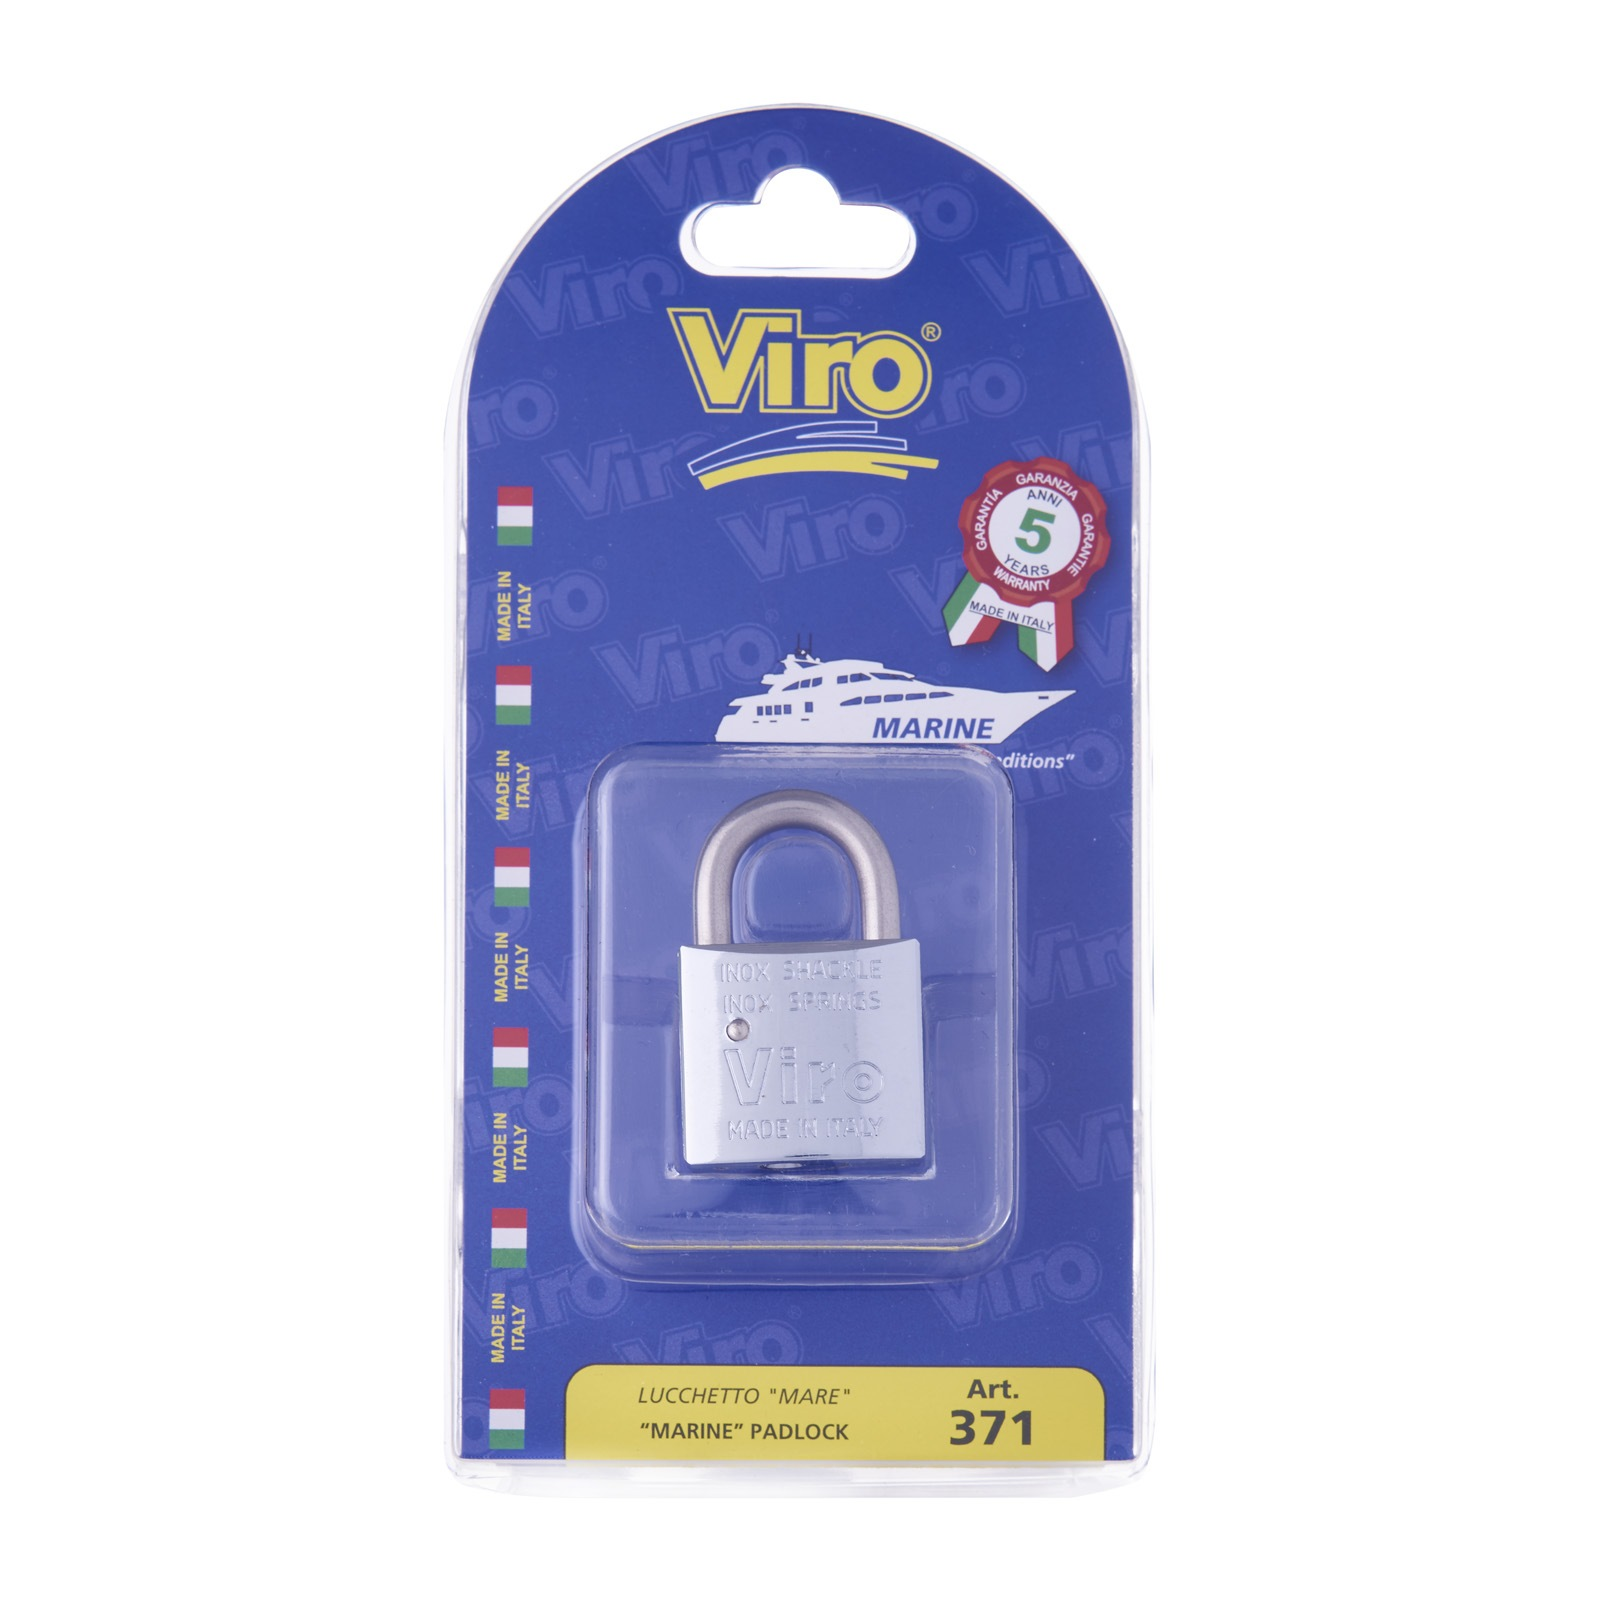 VIRO MARINE PADLOCK SHORT SHACKLE - 371 / 373